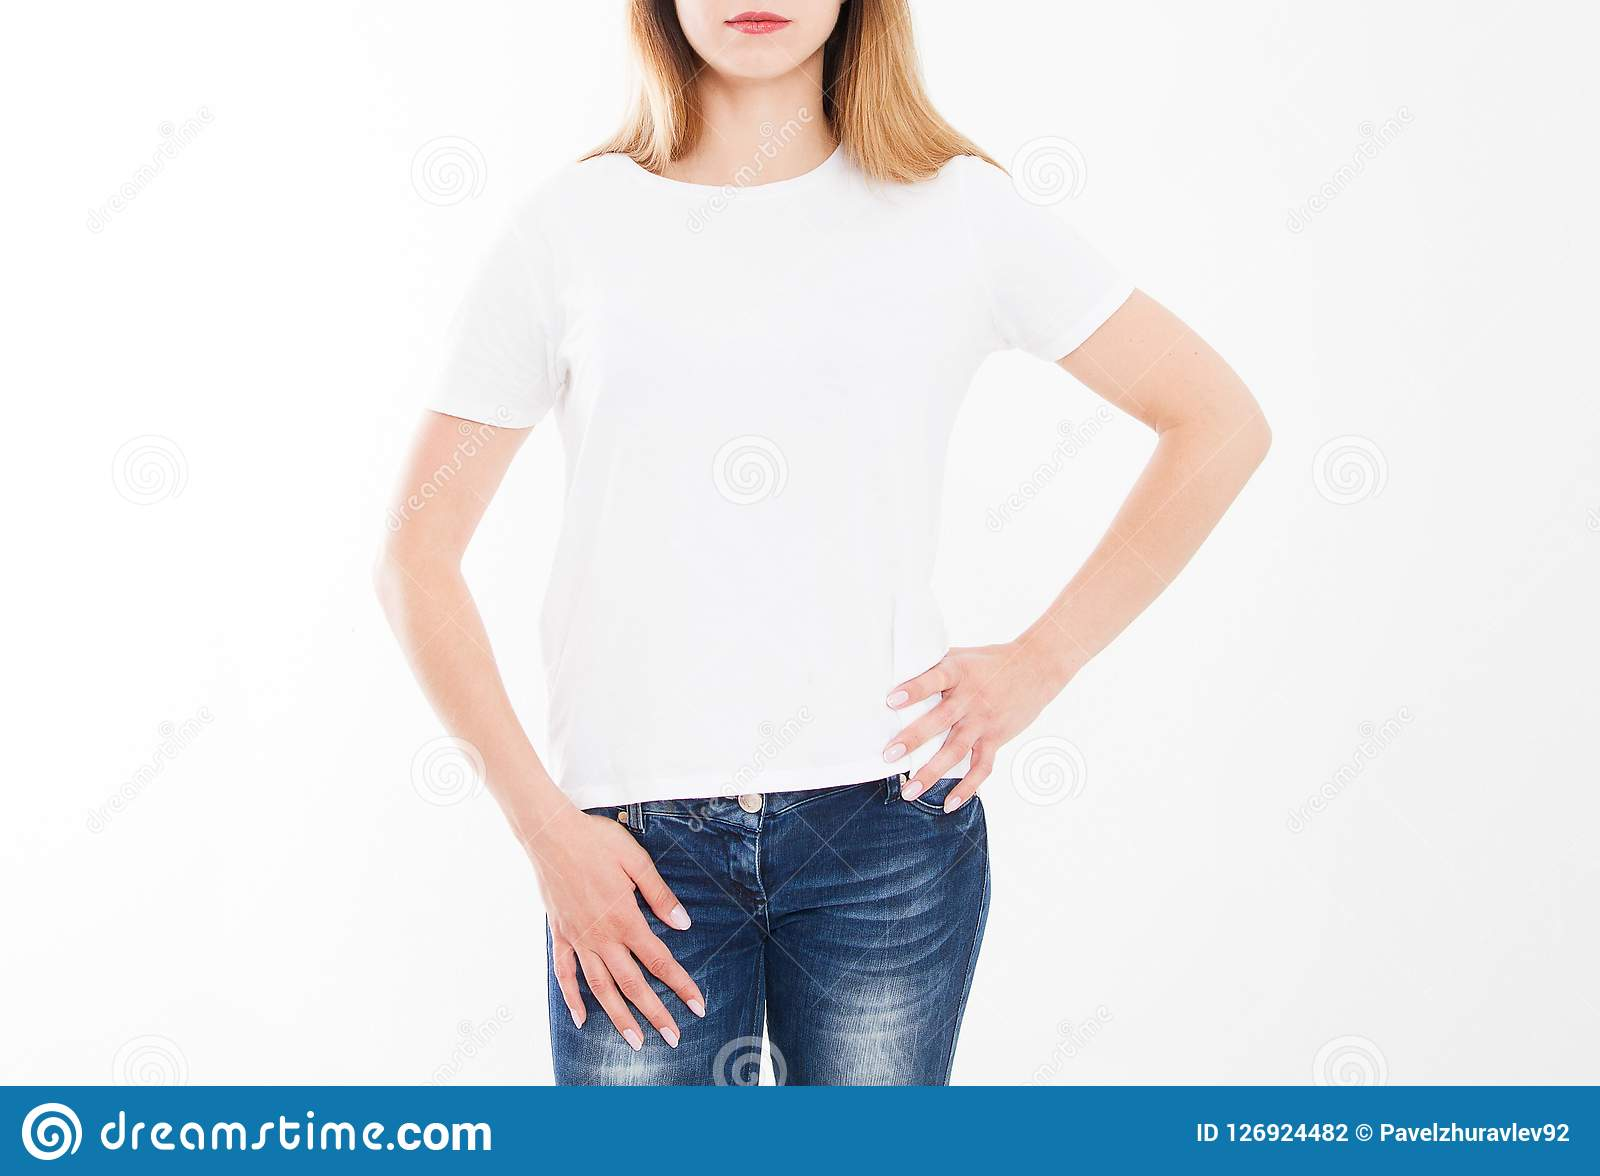 Cropped portrait of young girl in tshirt. T-shirt design, people concept - closeup of woman in white shirt, front isolated